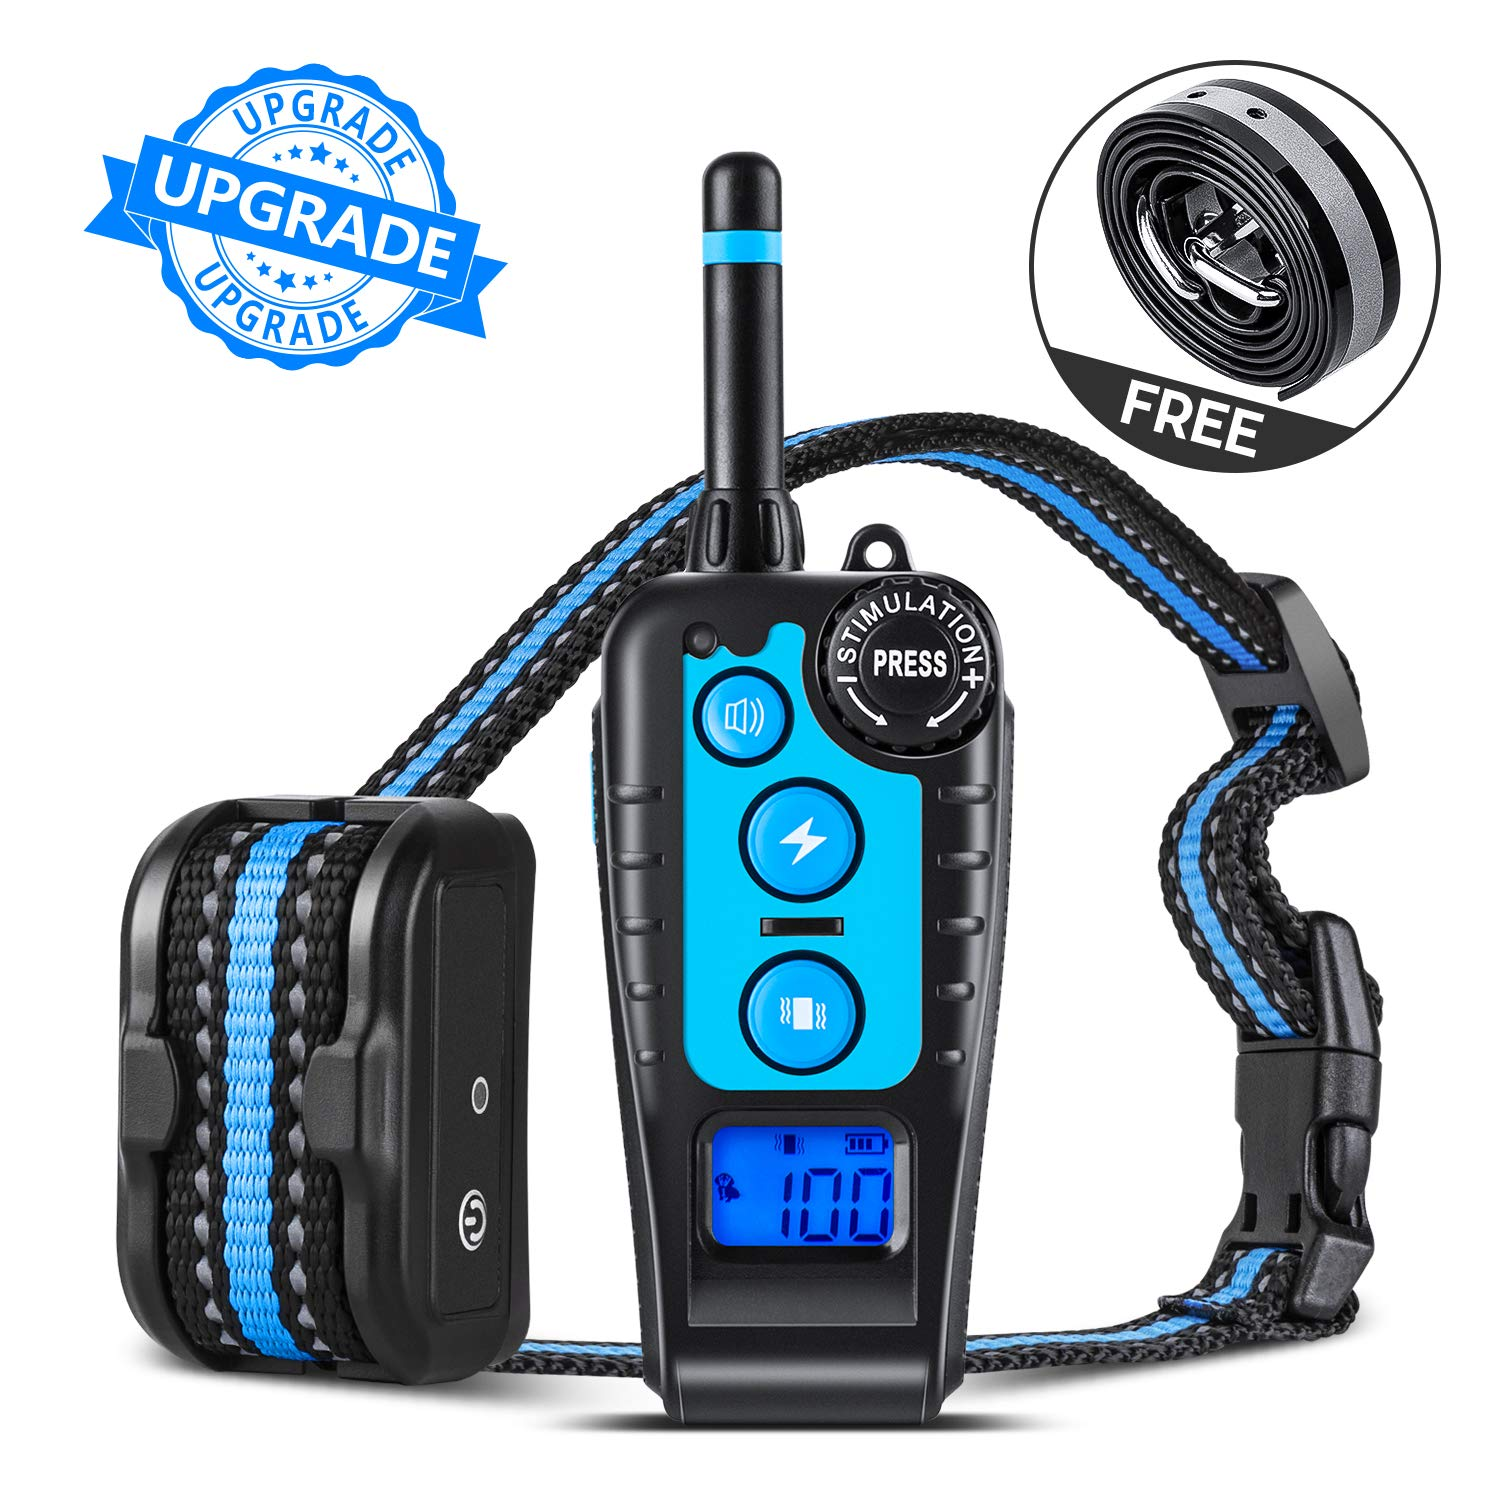 GLOUE Dog Training Collar,1640FT Remote Shock Collar for Dogs,Waterproof and Rechargeable,Beep/Vibration/Shock w/3 Training Modes for Small Medium Large Dogs by GLOUE (Image #1)